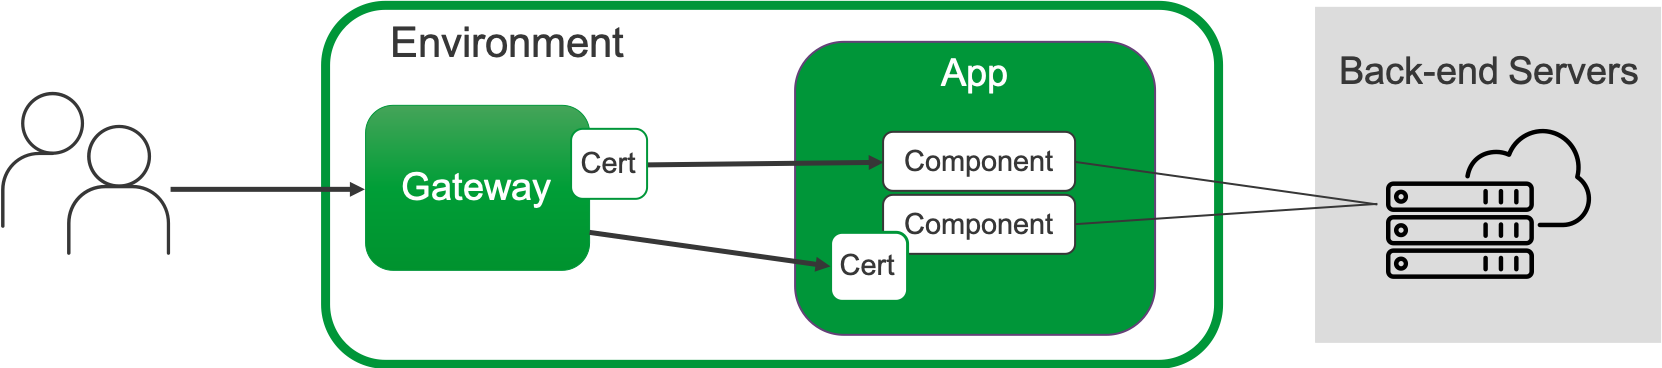 Example traffic flow through a gateway to app components that represent a back-end application. Certs can be configured at the gateway or at the app component level.